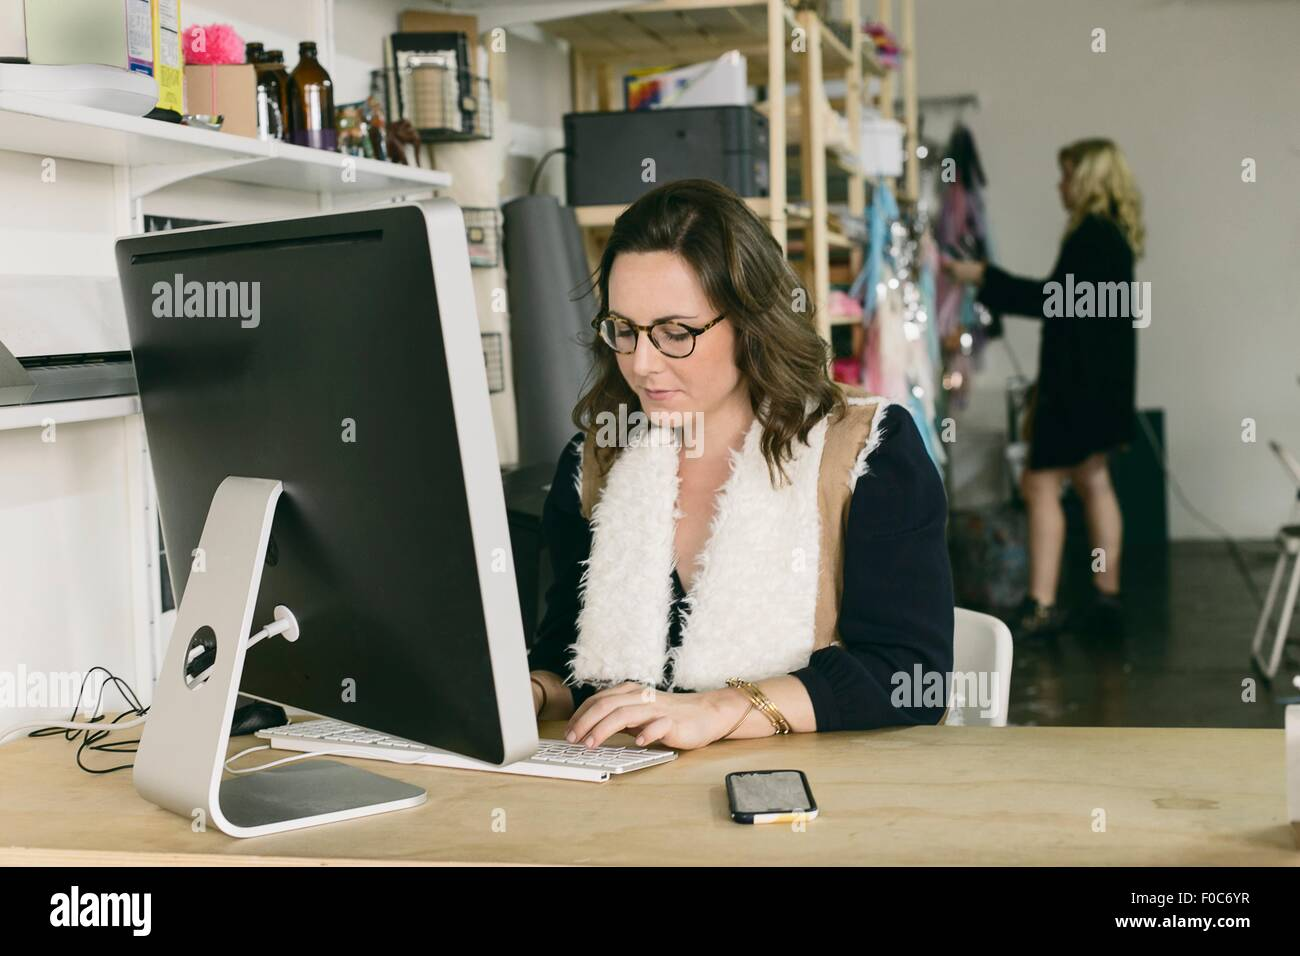 Female office worker at desk in design studio Photo Stock